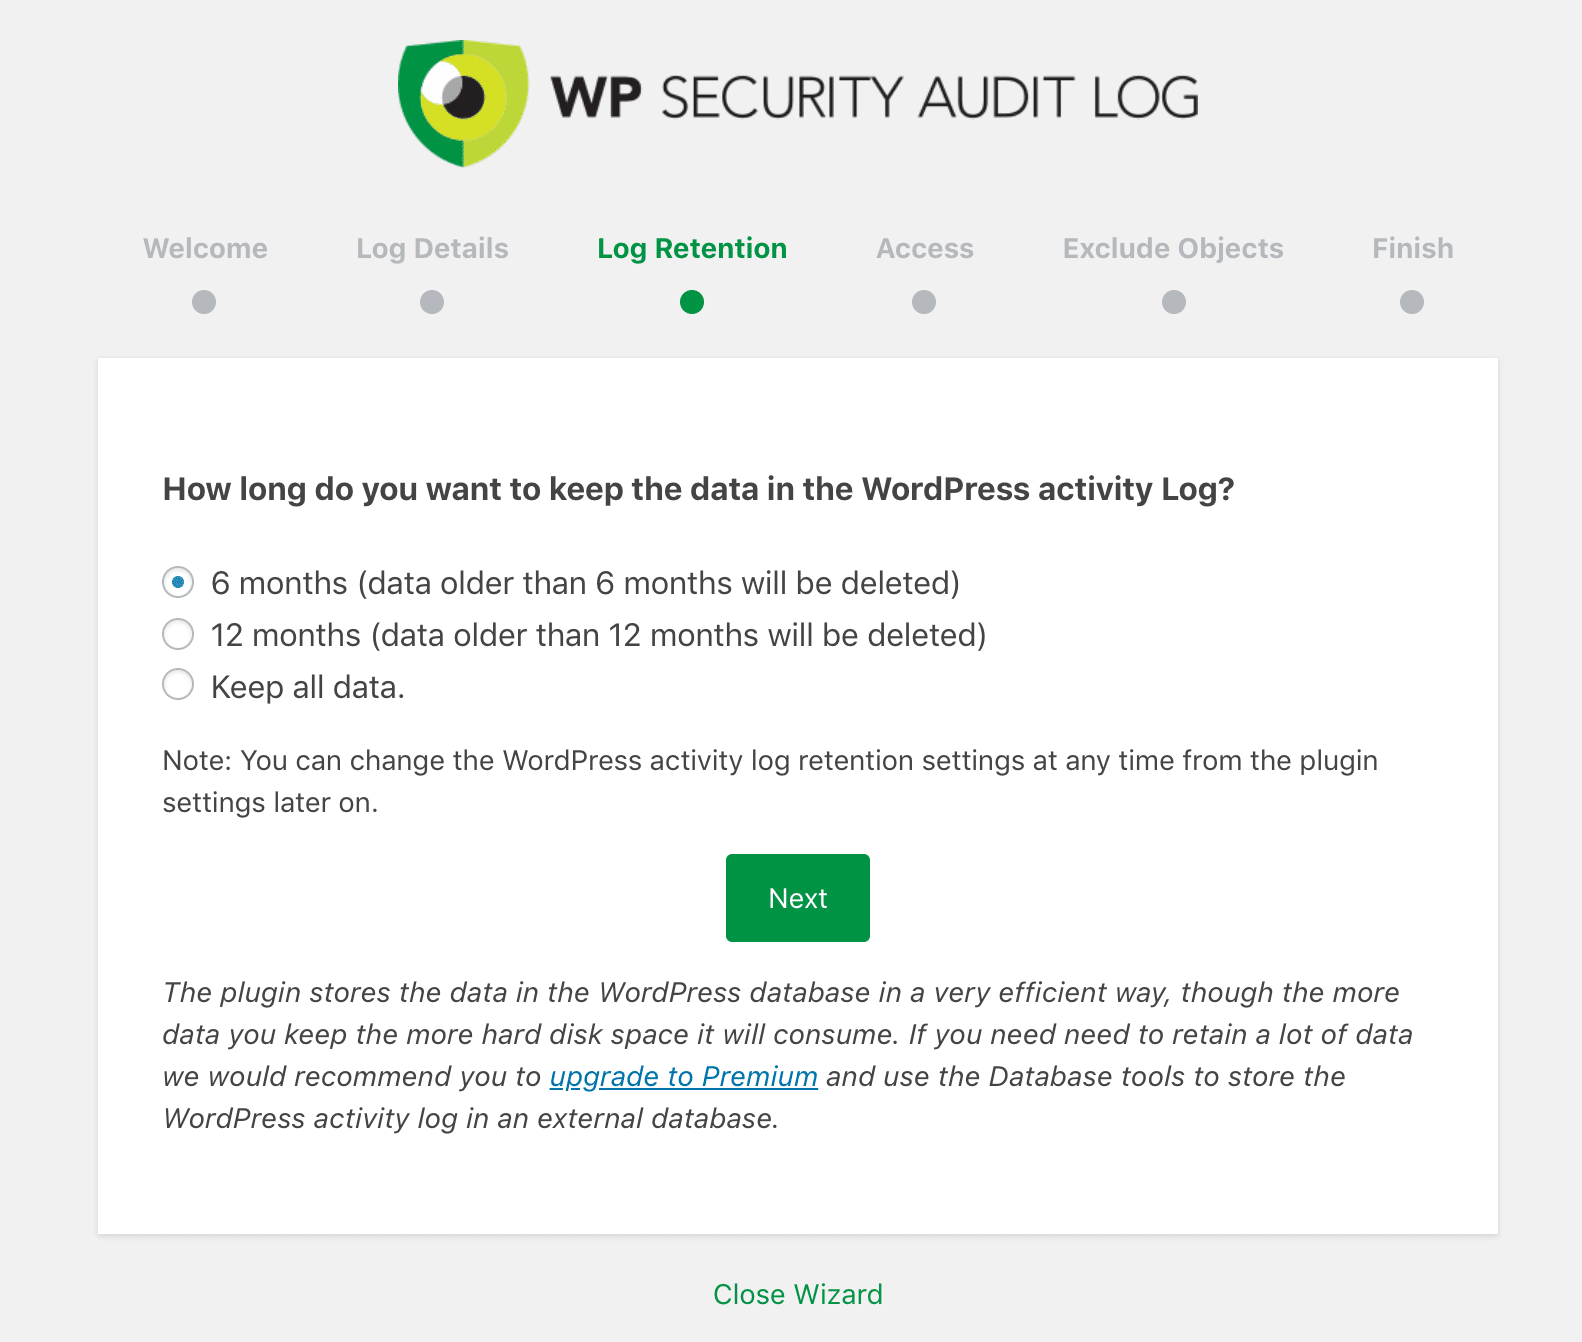 WP Security Audit Log data retention